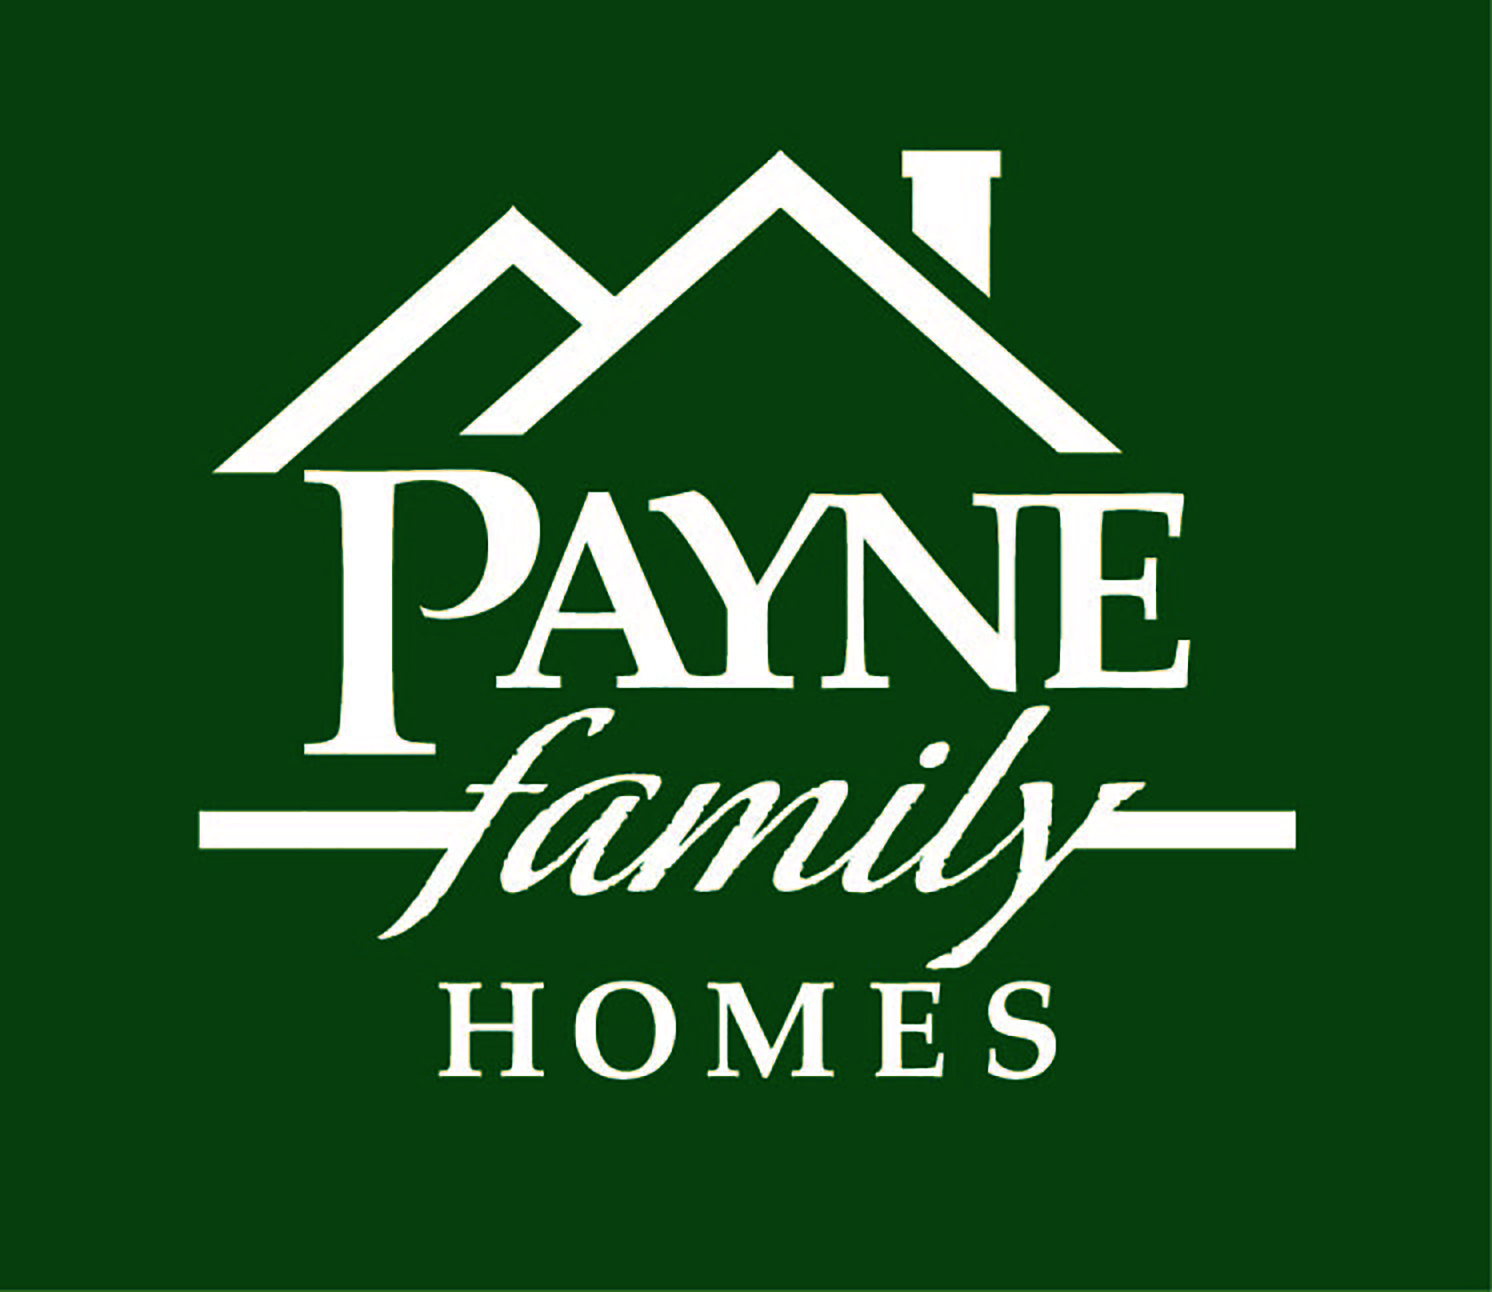 A2. Payne Family Homes (Presenting)